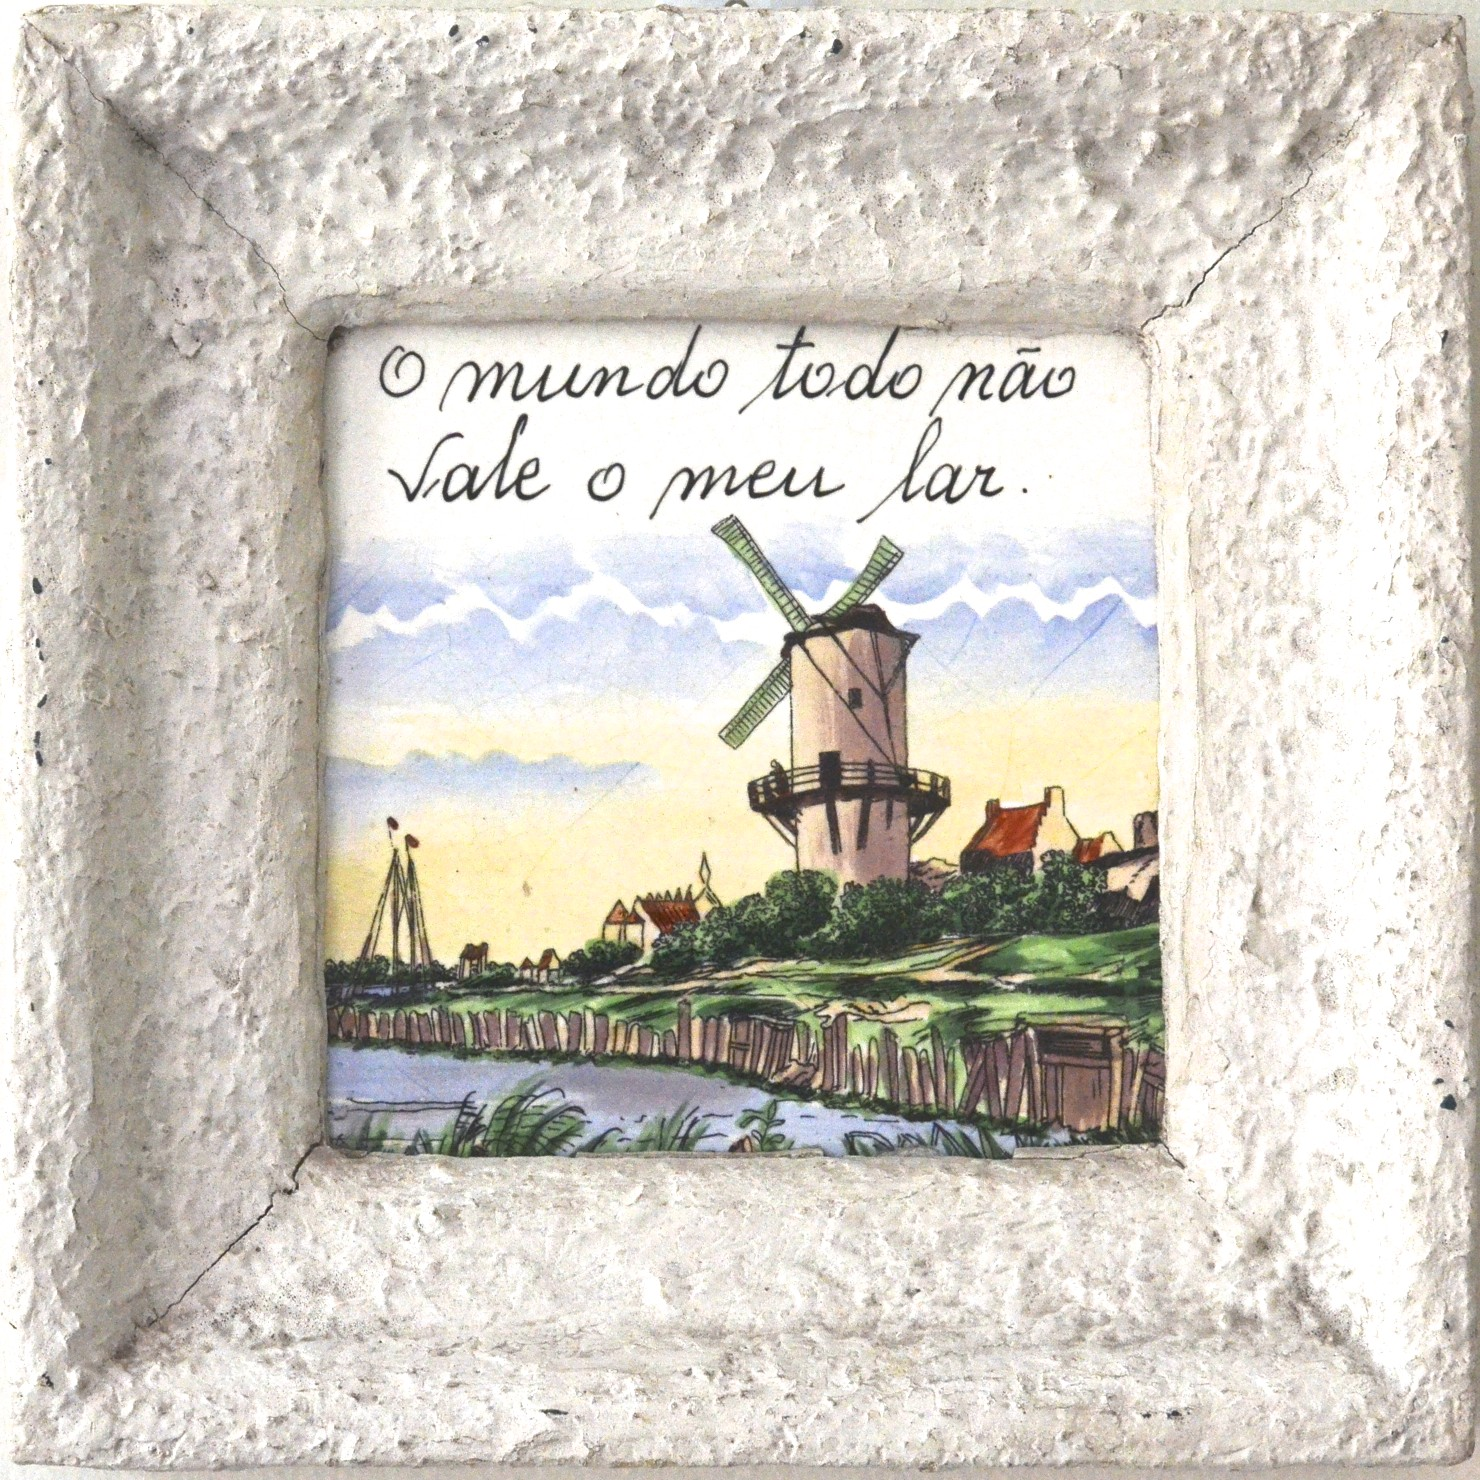 wind mill, holland, netherlands, village, sky, tile, framed tile, there is no place like home, o mundo todo nao vale meu law